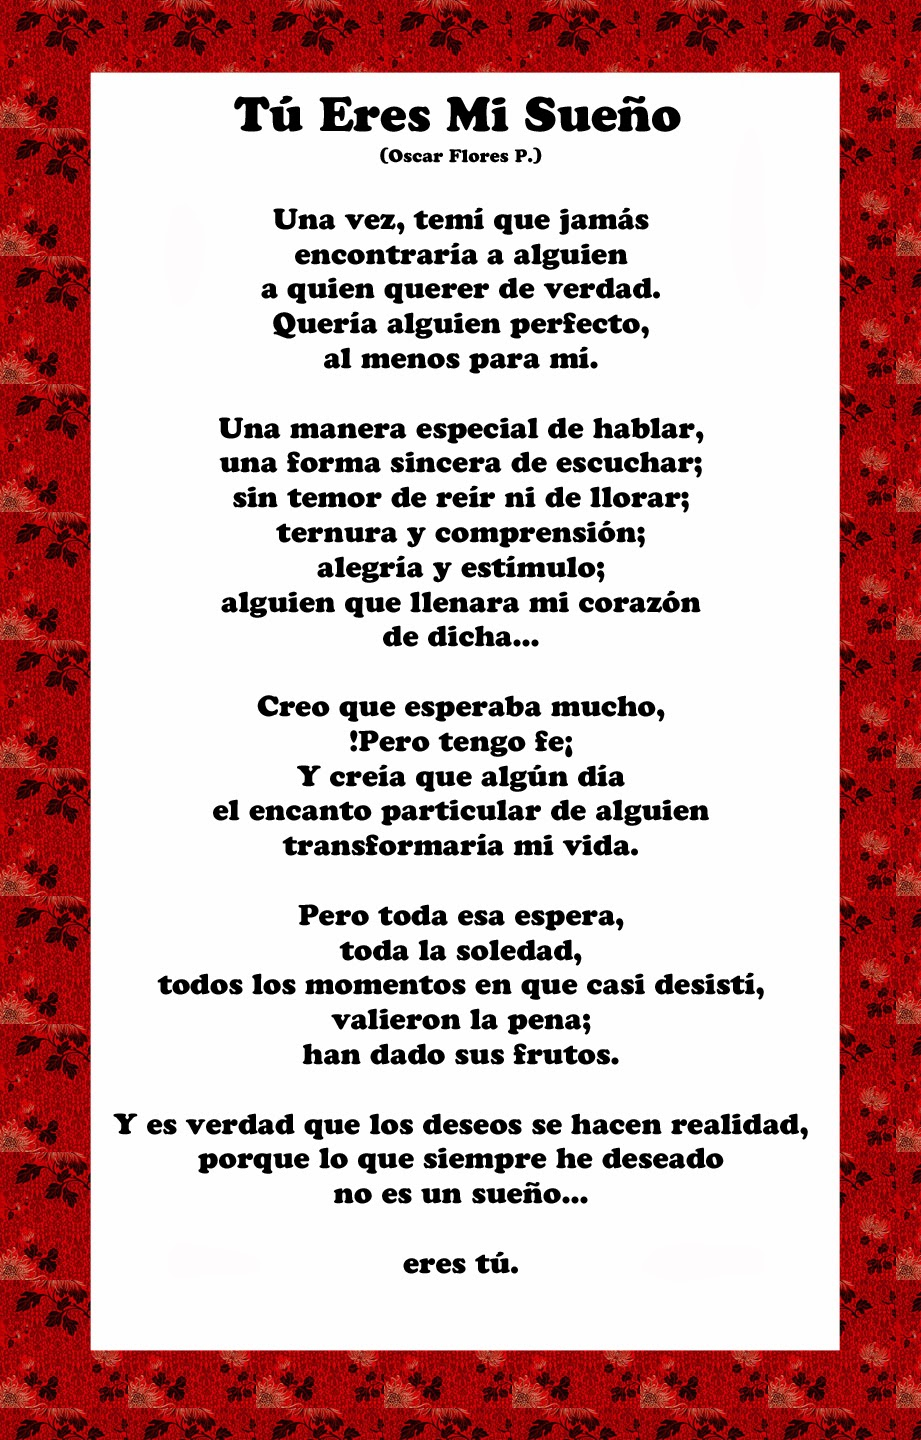 Poems about love in spanish